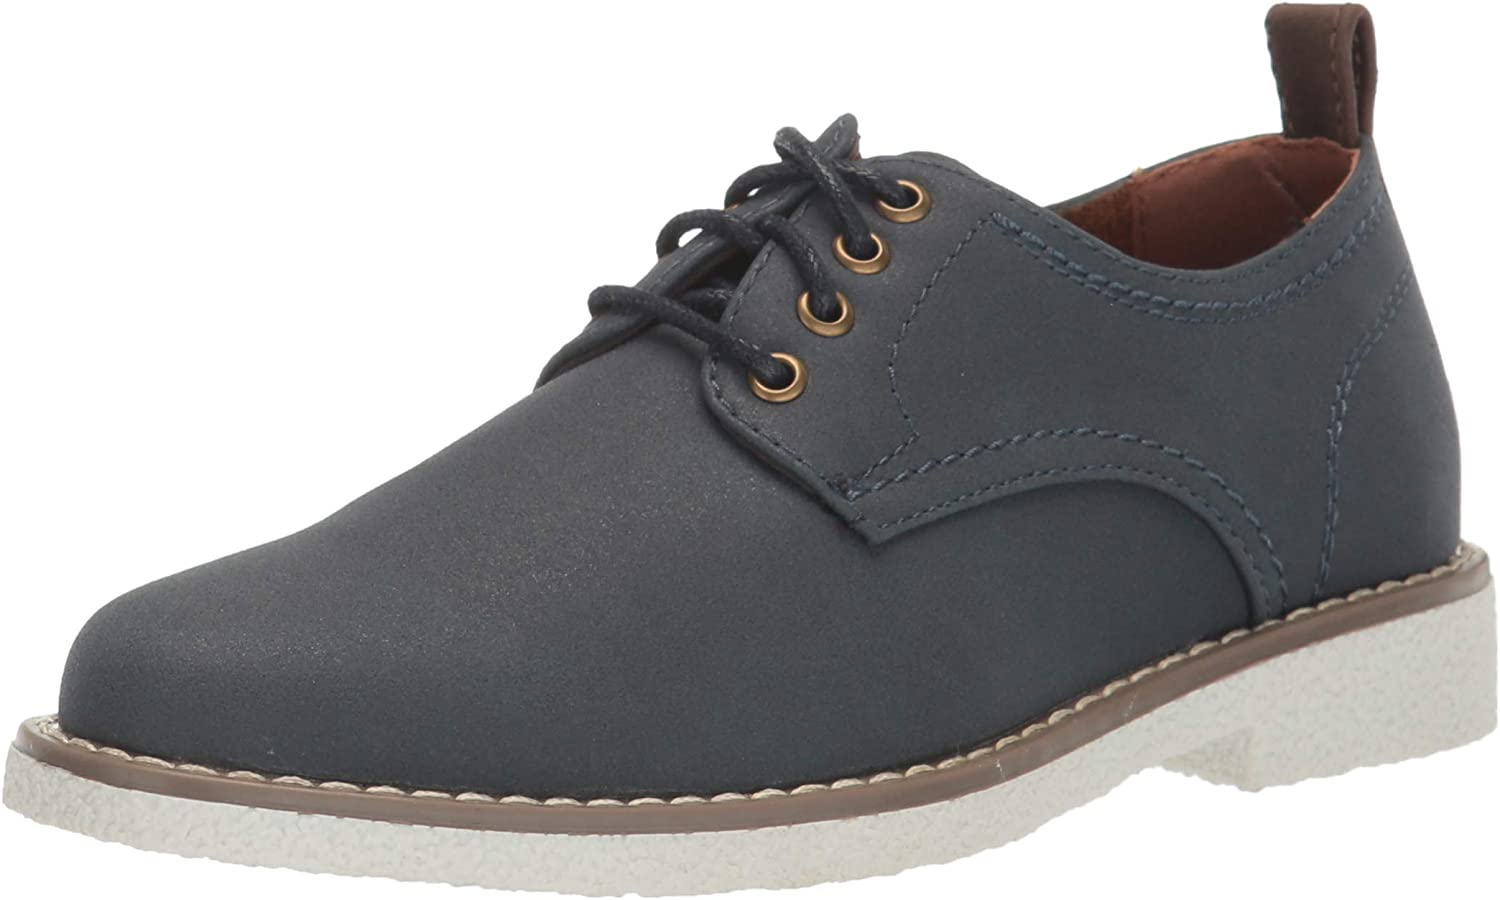 Deer Stags Alver Boys Toddler-Youth Oxford